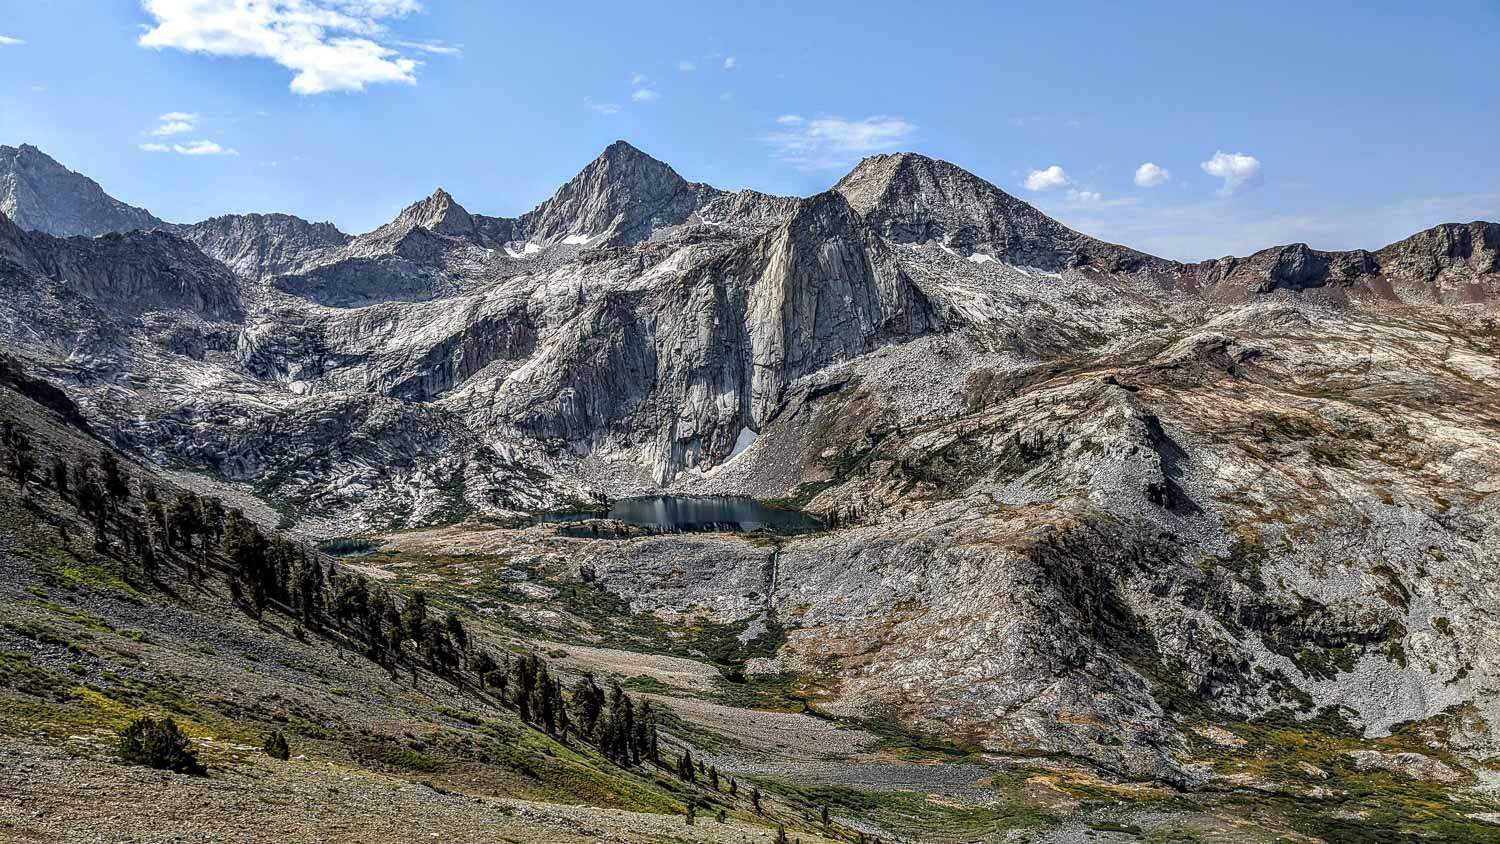 Descending from Black Rock Pass into Mineral King